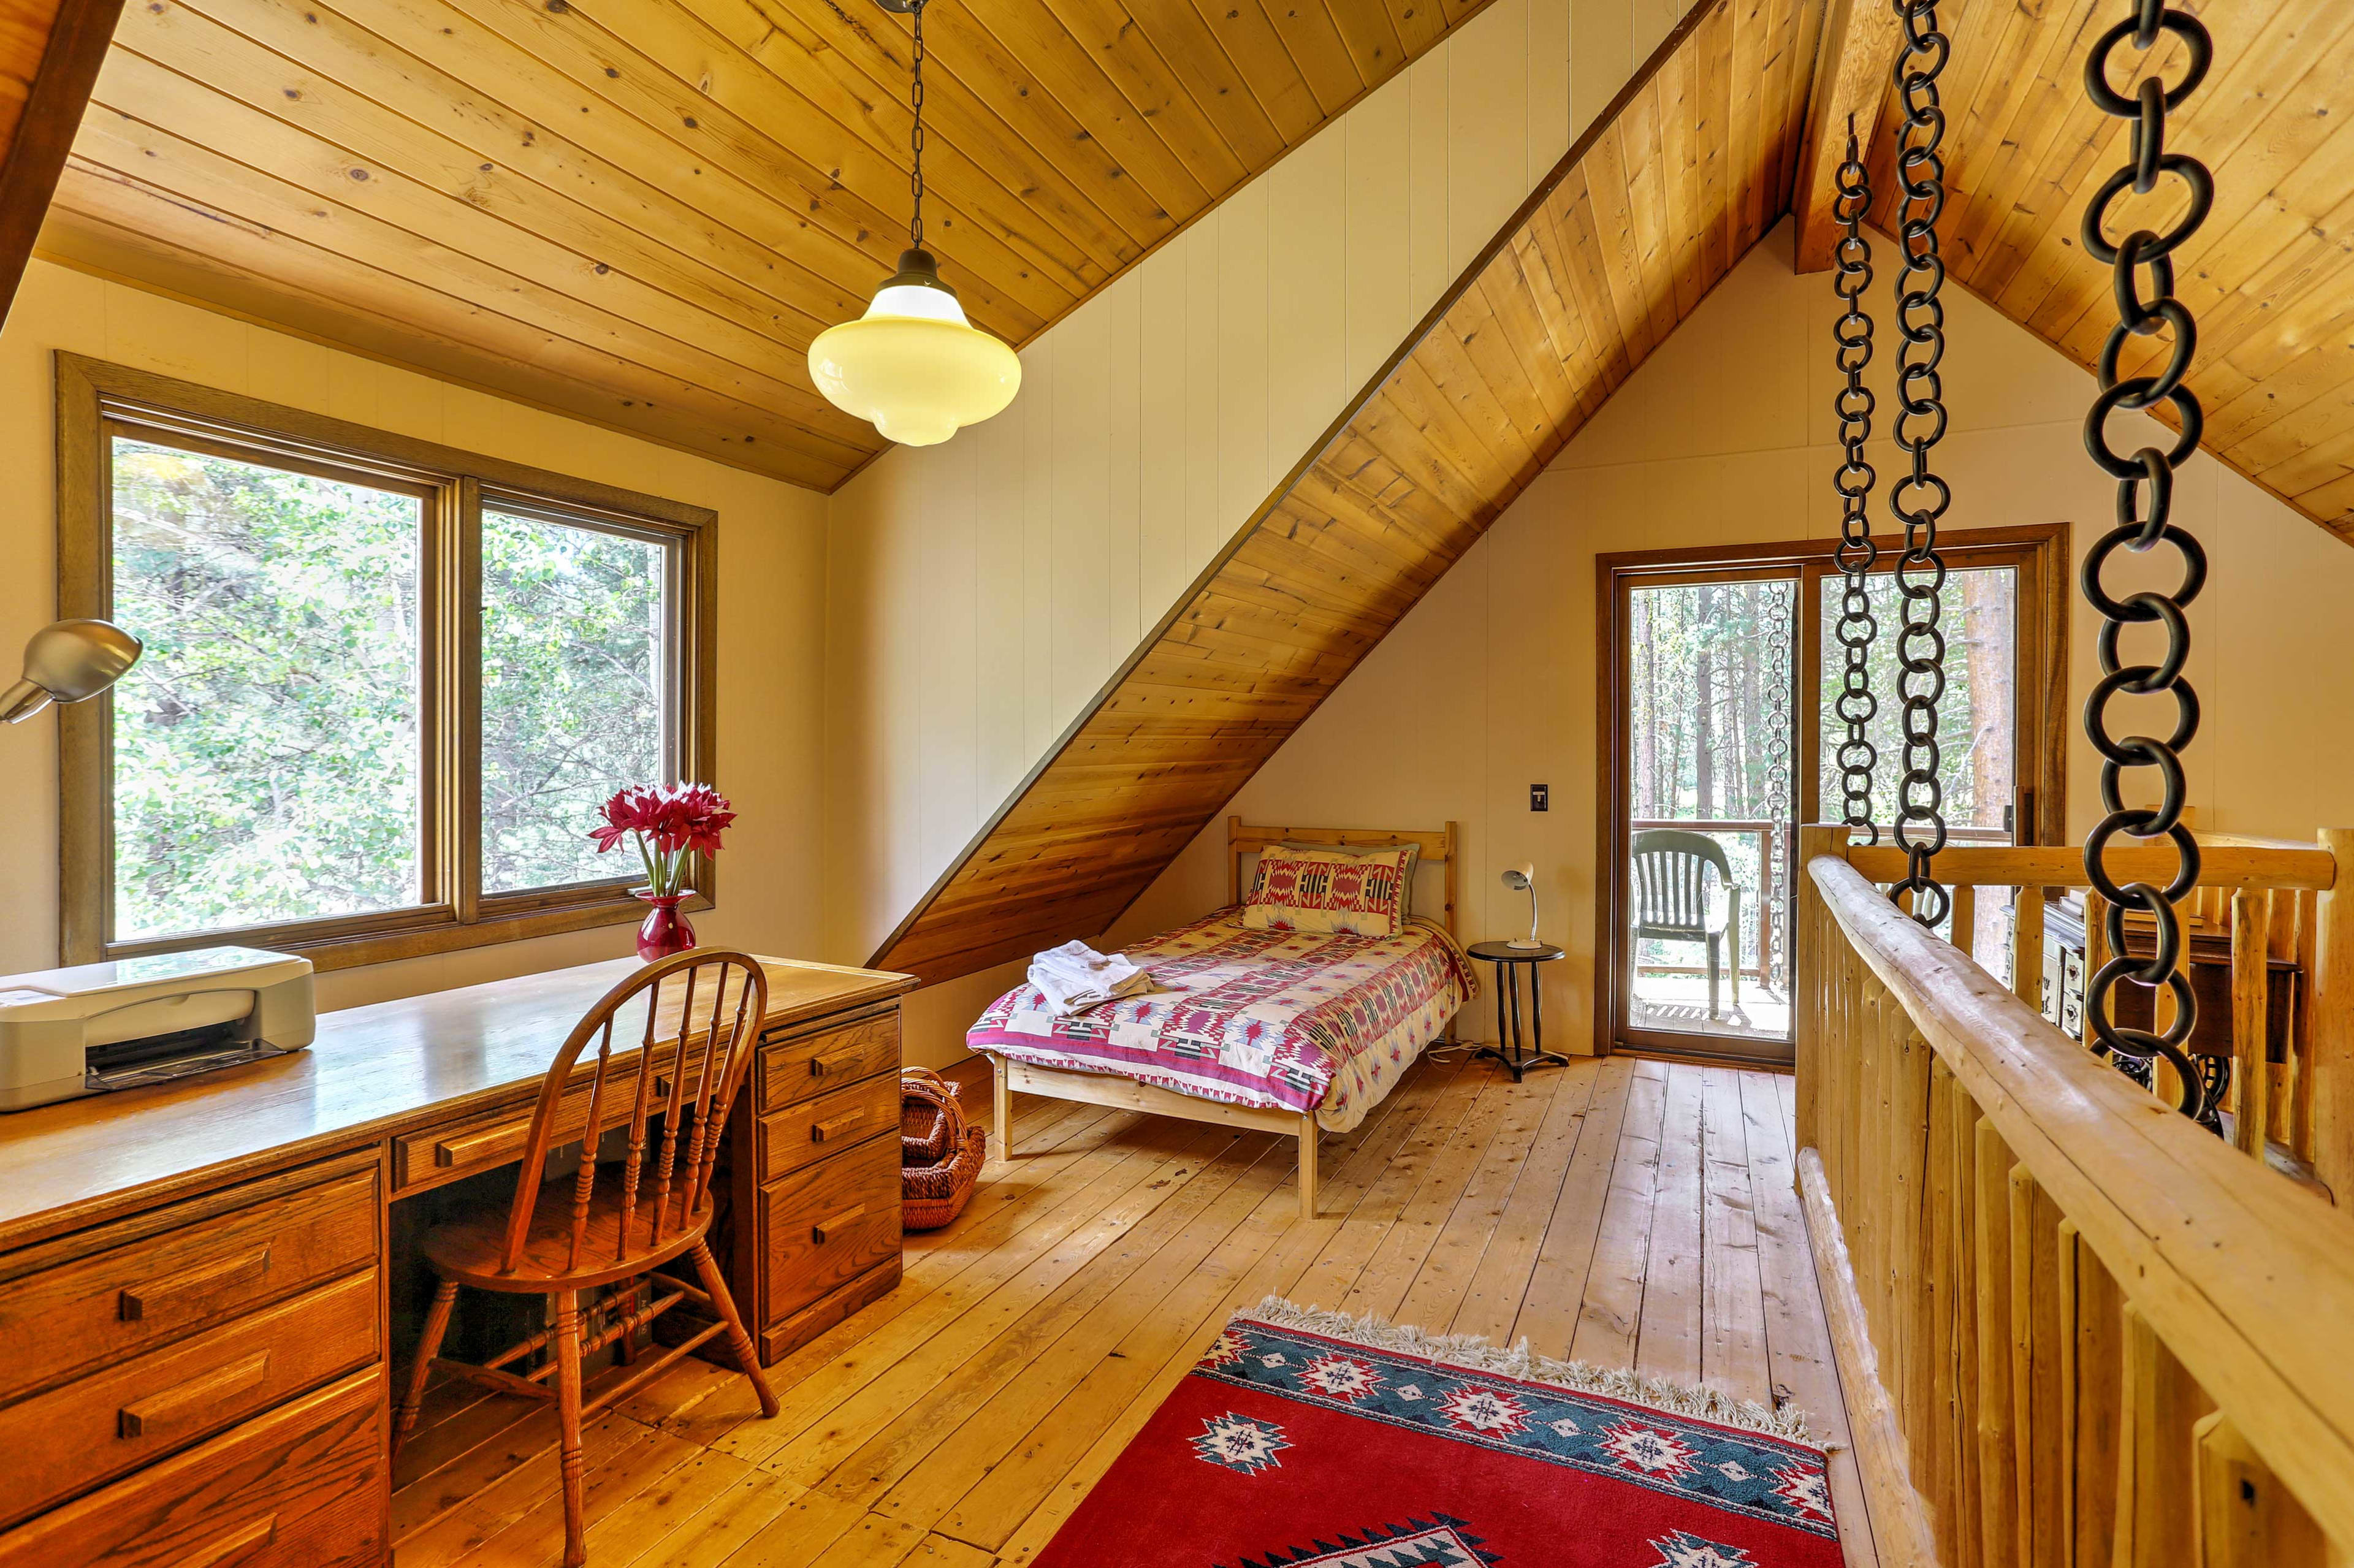 Head up to the loft where a guest can sleep in the twin-sized bed.